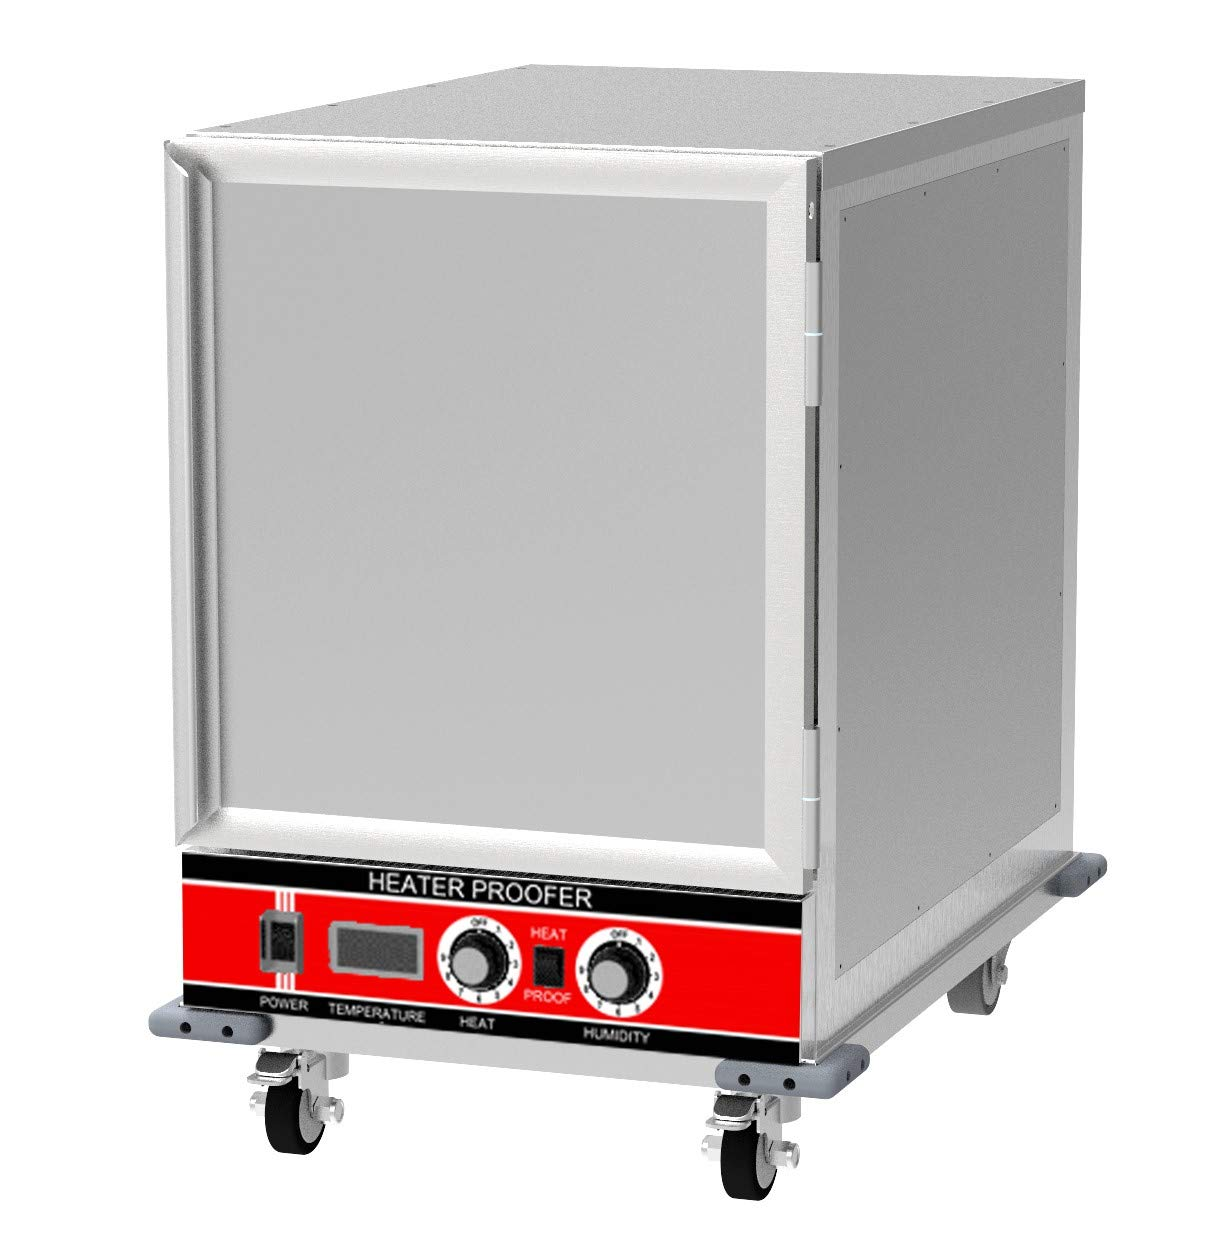 Chef's Exclusive CE806 Insulated Undercounter Heater Proofer Holding Cabinet Solid Door 1500 Watts Commercial Half Size Holds (14) 18in x 26in Sheet Pans Forced Air For Mobile Use, 32.75in Height